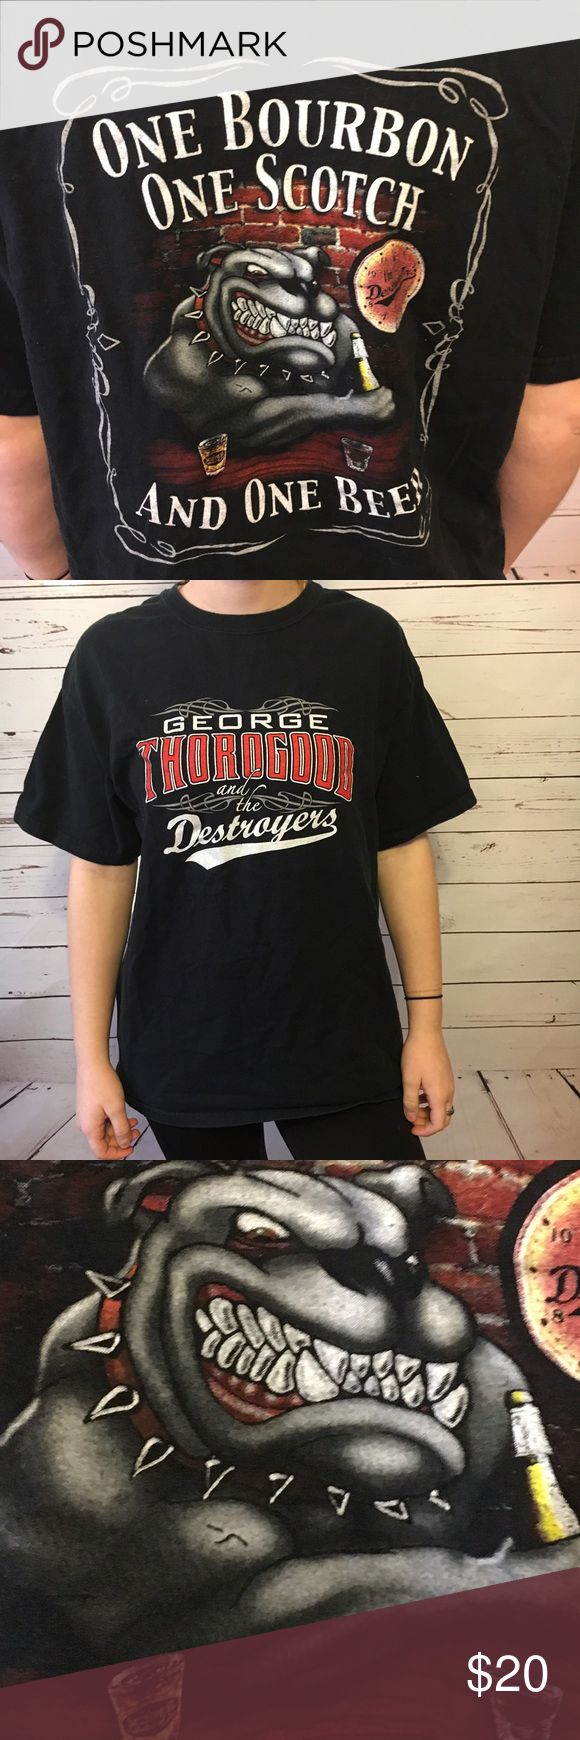 """George Thorogood """"one bourbon one Scotch one beer"""" George thorogood and the destroyers band tee. Good condition. Size unisex medium. Measurements to come. Model is 5-4 125 pounds. band tee Tops Tees - Short Sleeve"""